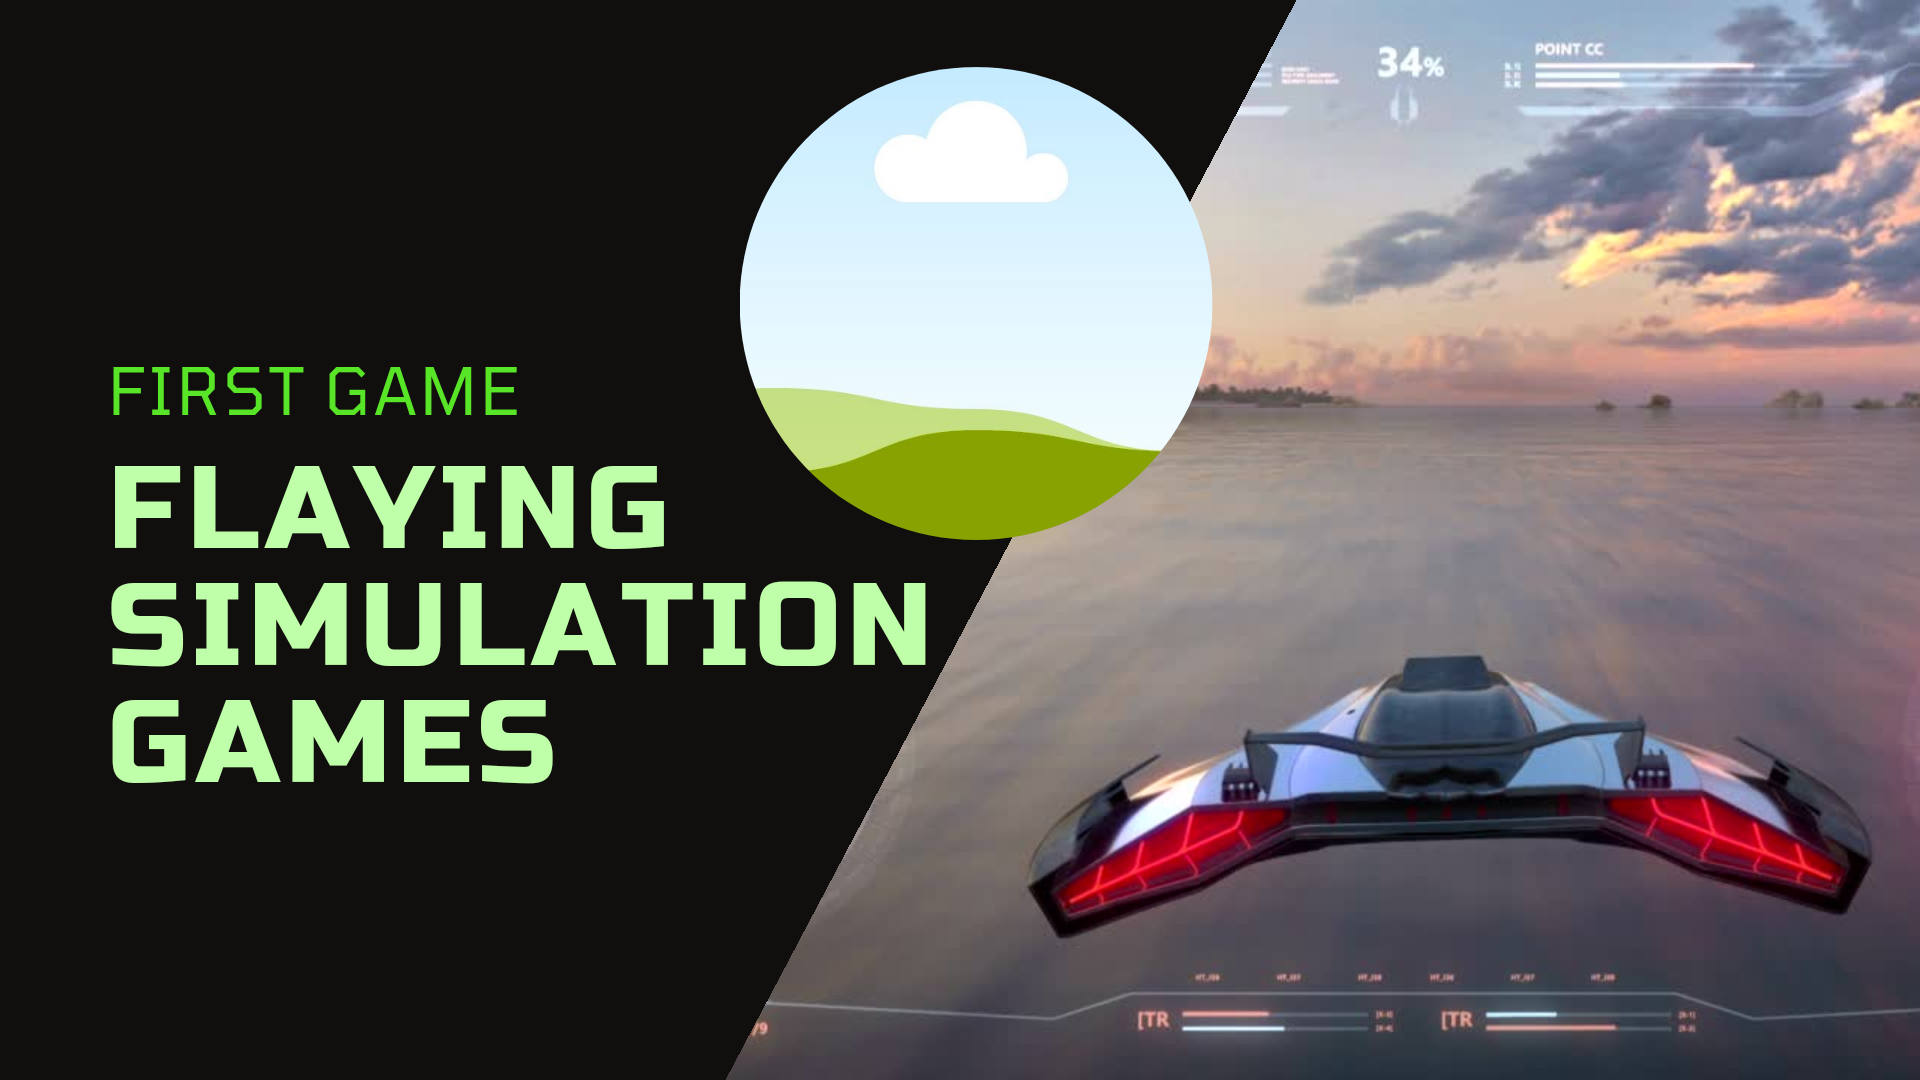 FLAYING SIMULATION GAMES. You will discover the topics about SIMULATION GAMES